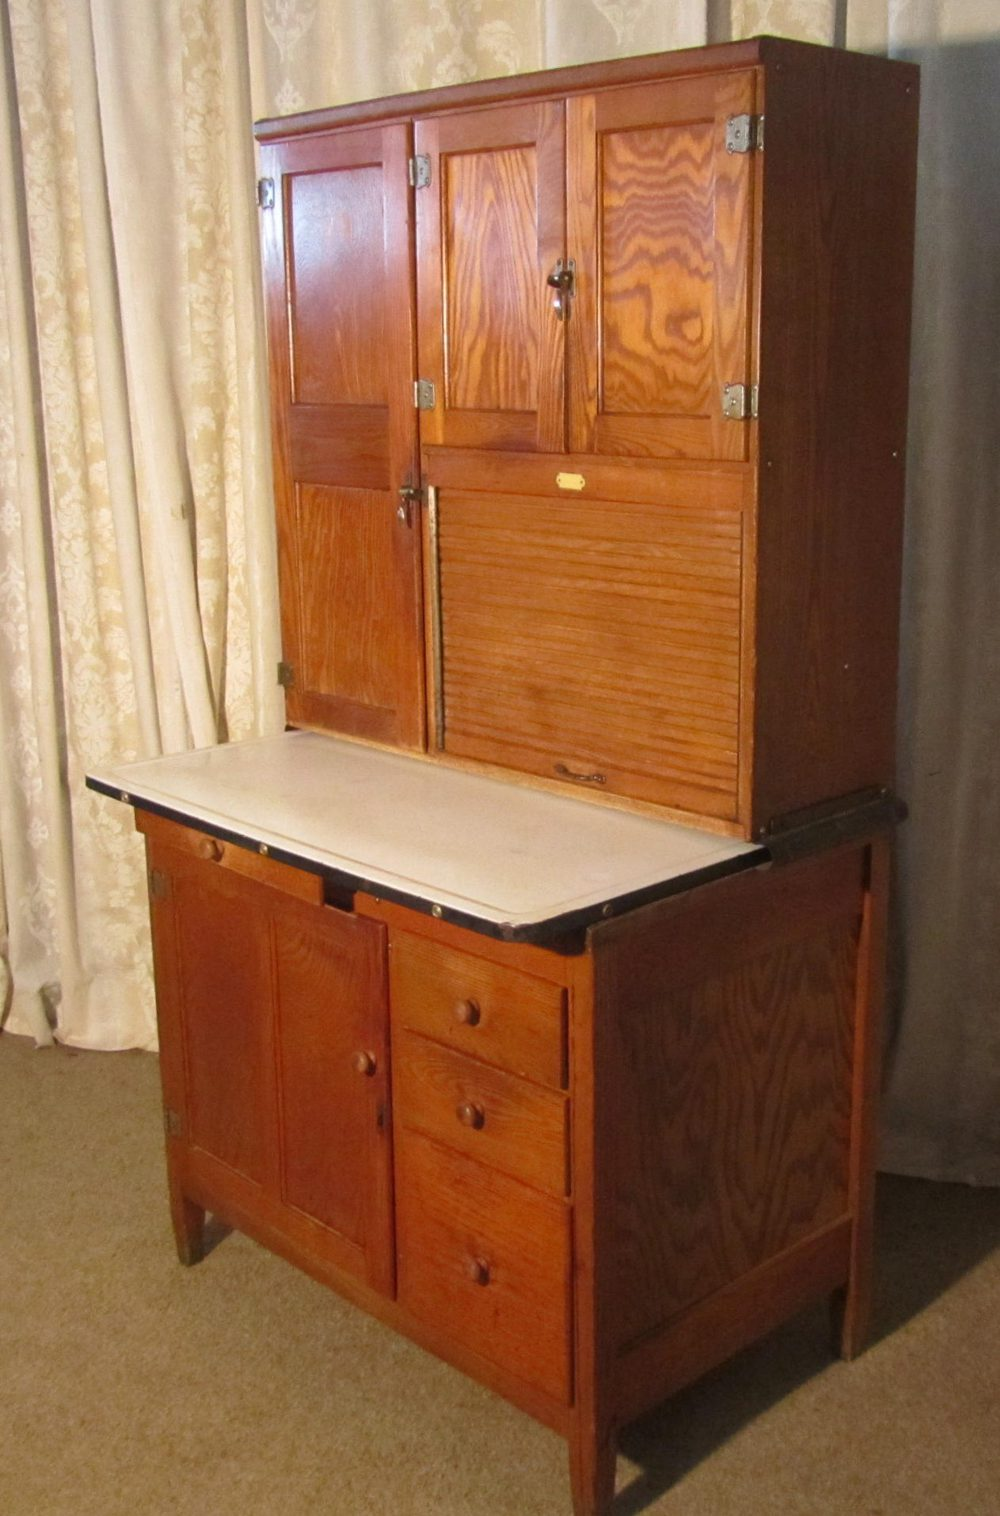 Hoosier Kitchen Cabinet An Art Deco Hoosier Kitchen Cabinet Dresser Antiques Atlas